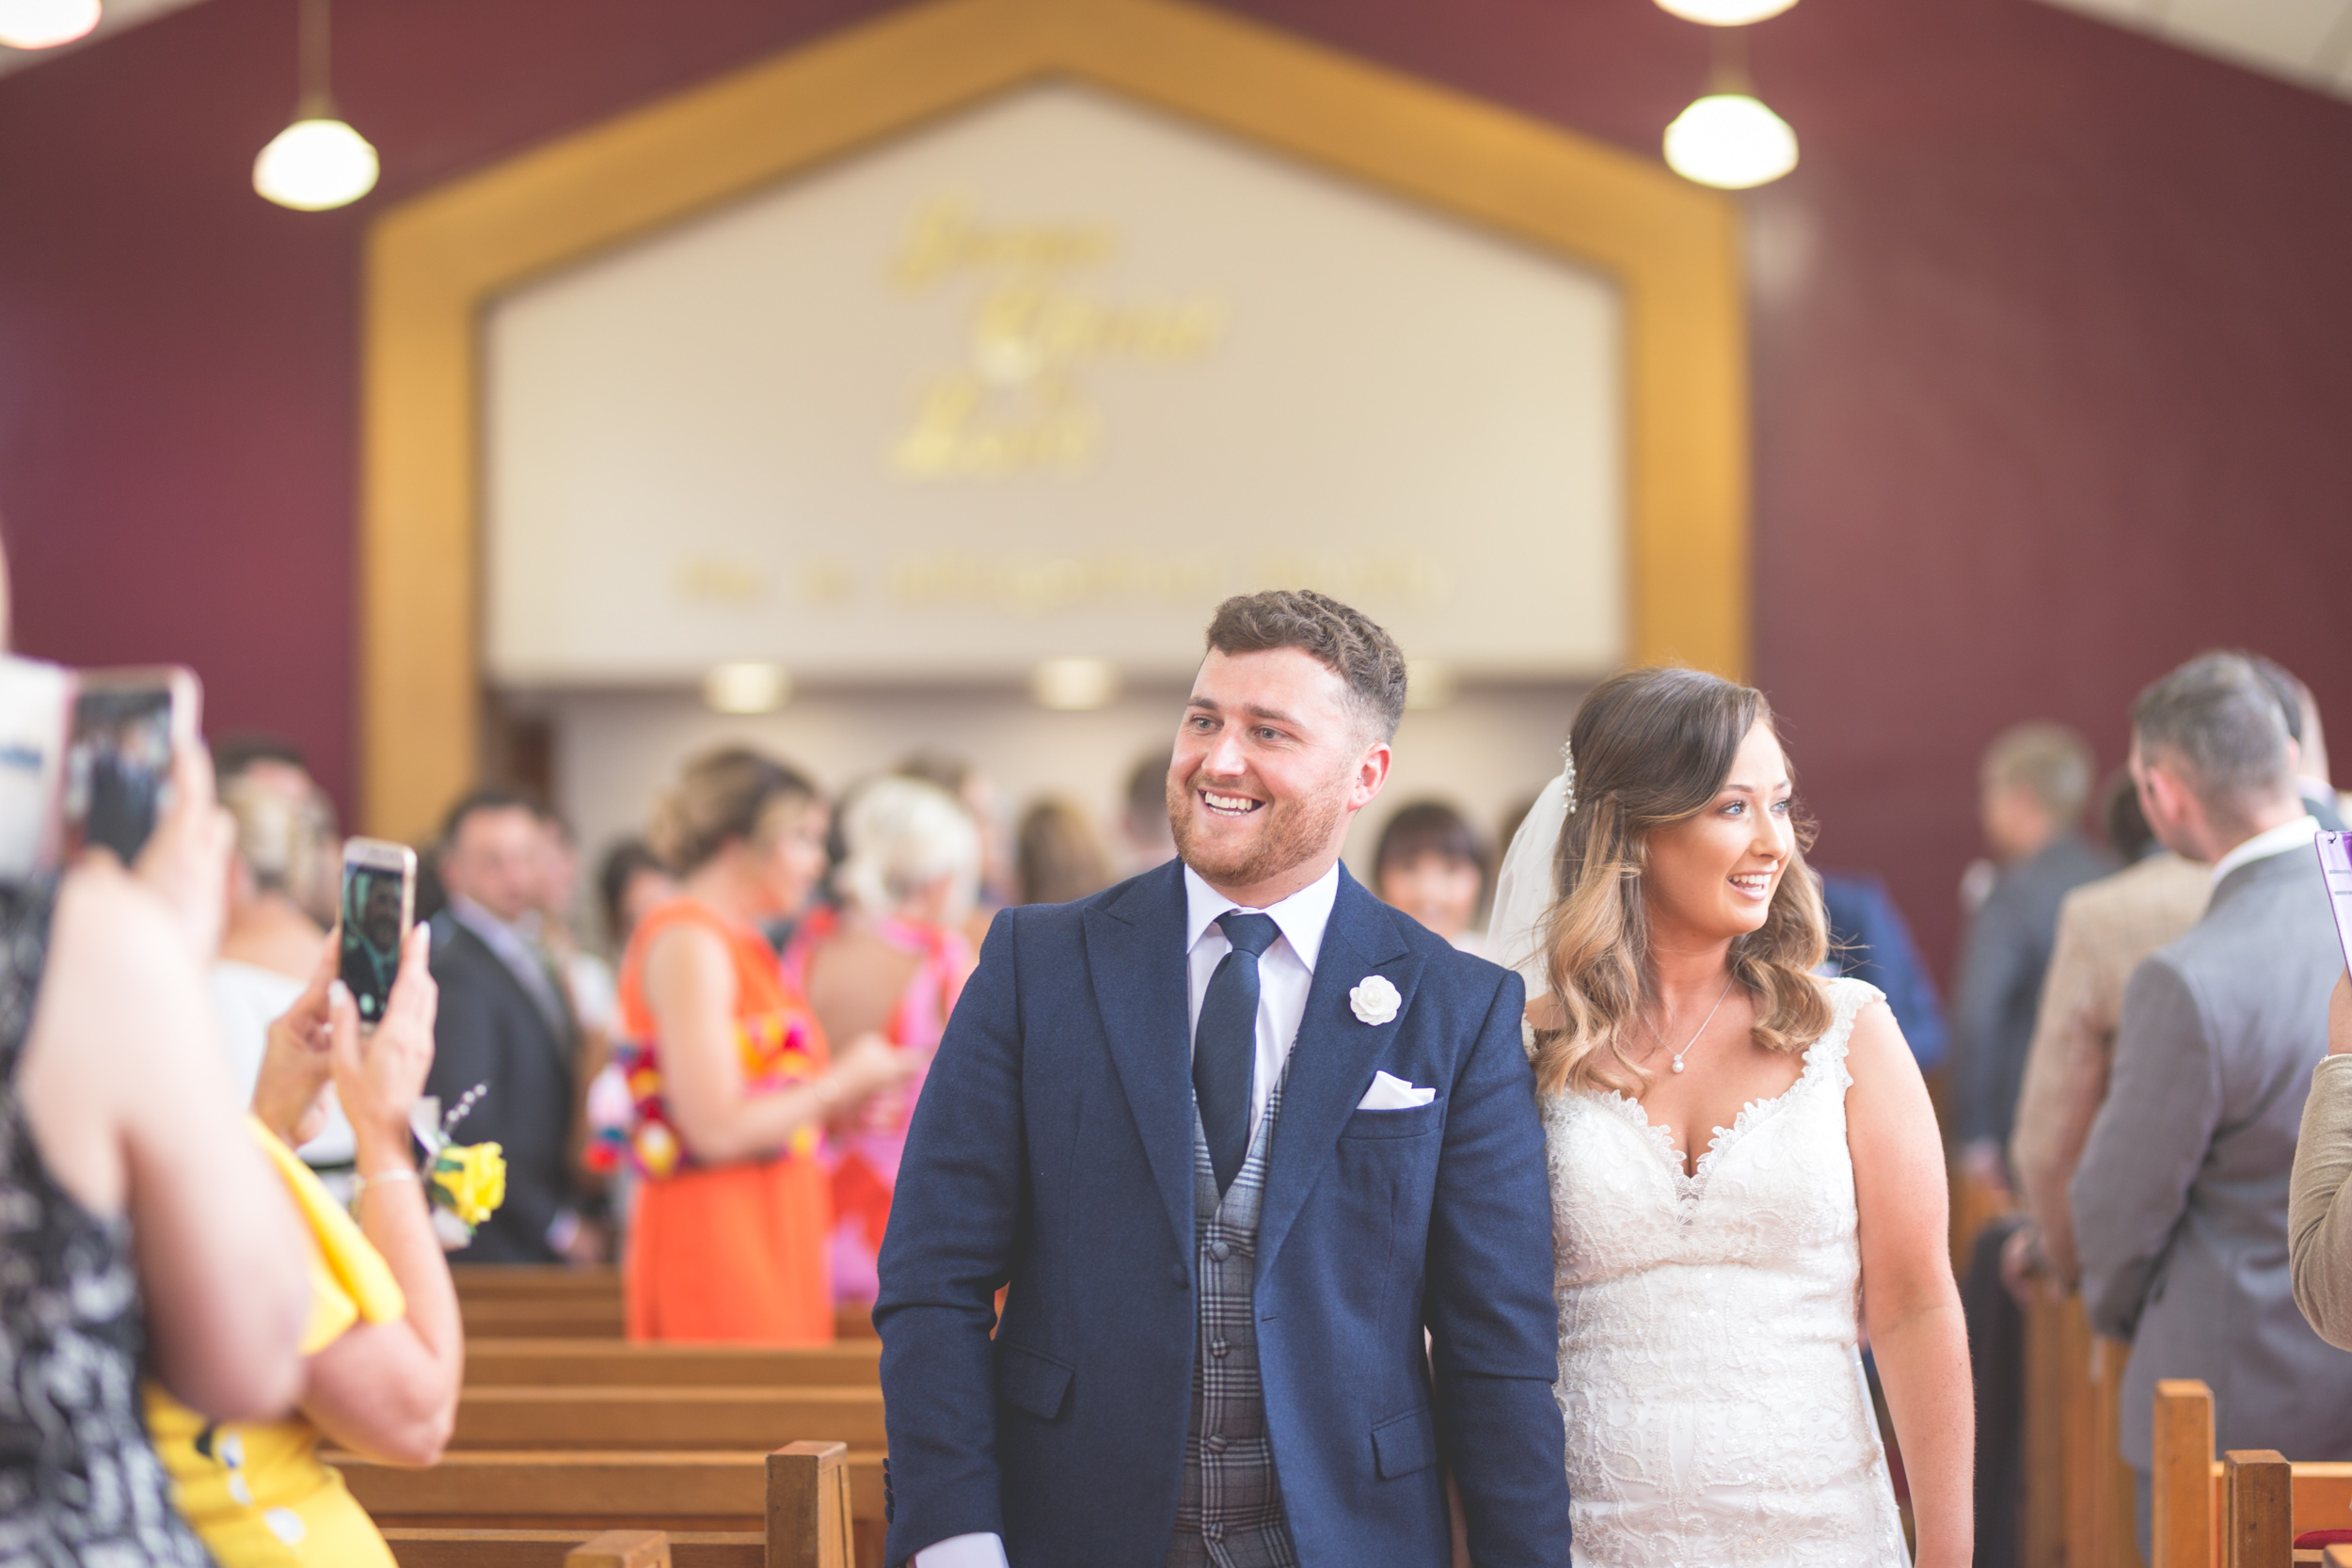 Brian McEwan | Northern Ireland Wedding Photographer | Rebecca & Michael | Ceremony-111.jpg